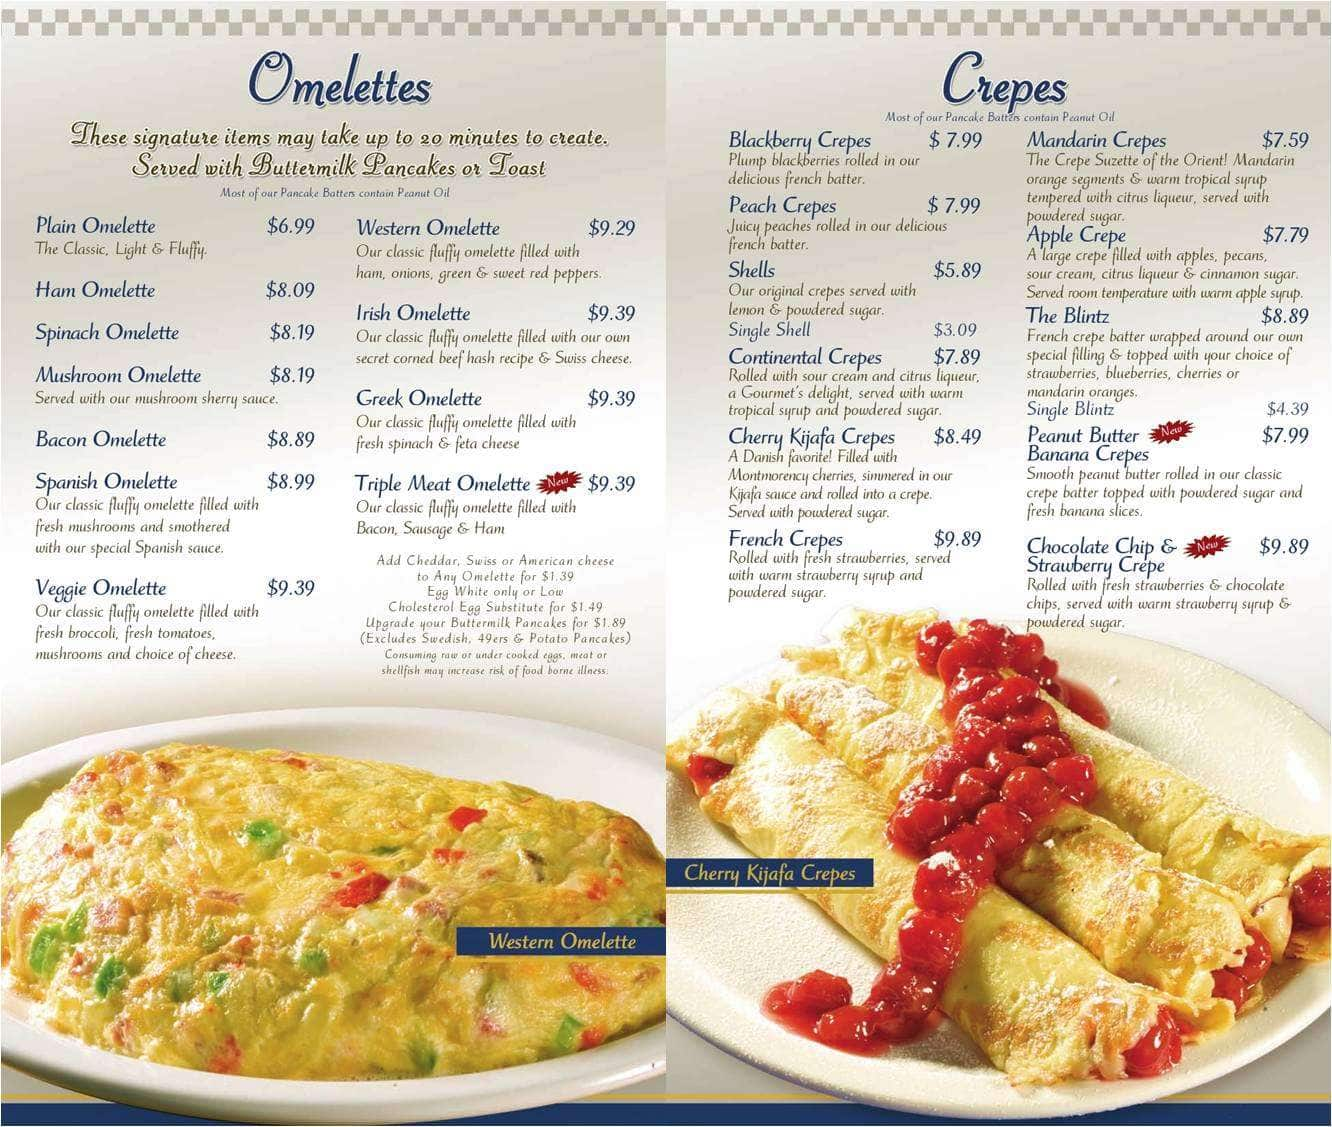 Scanned Menu For The Original Pancake House